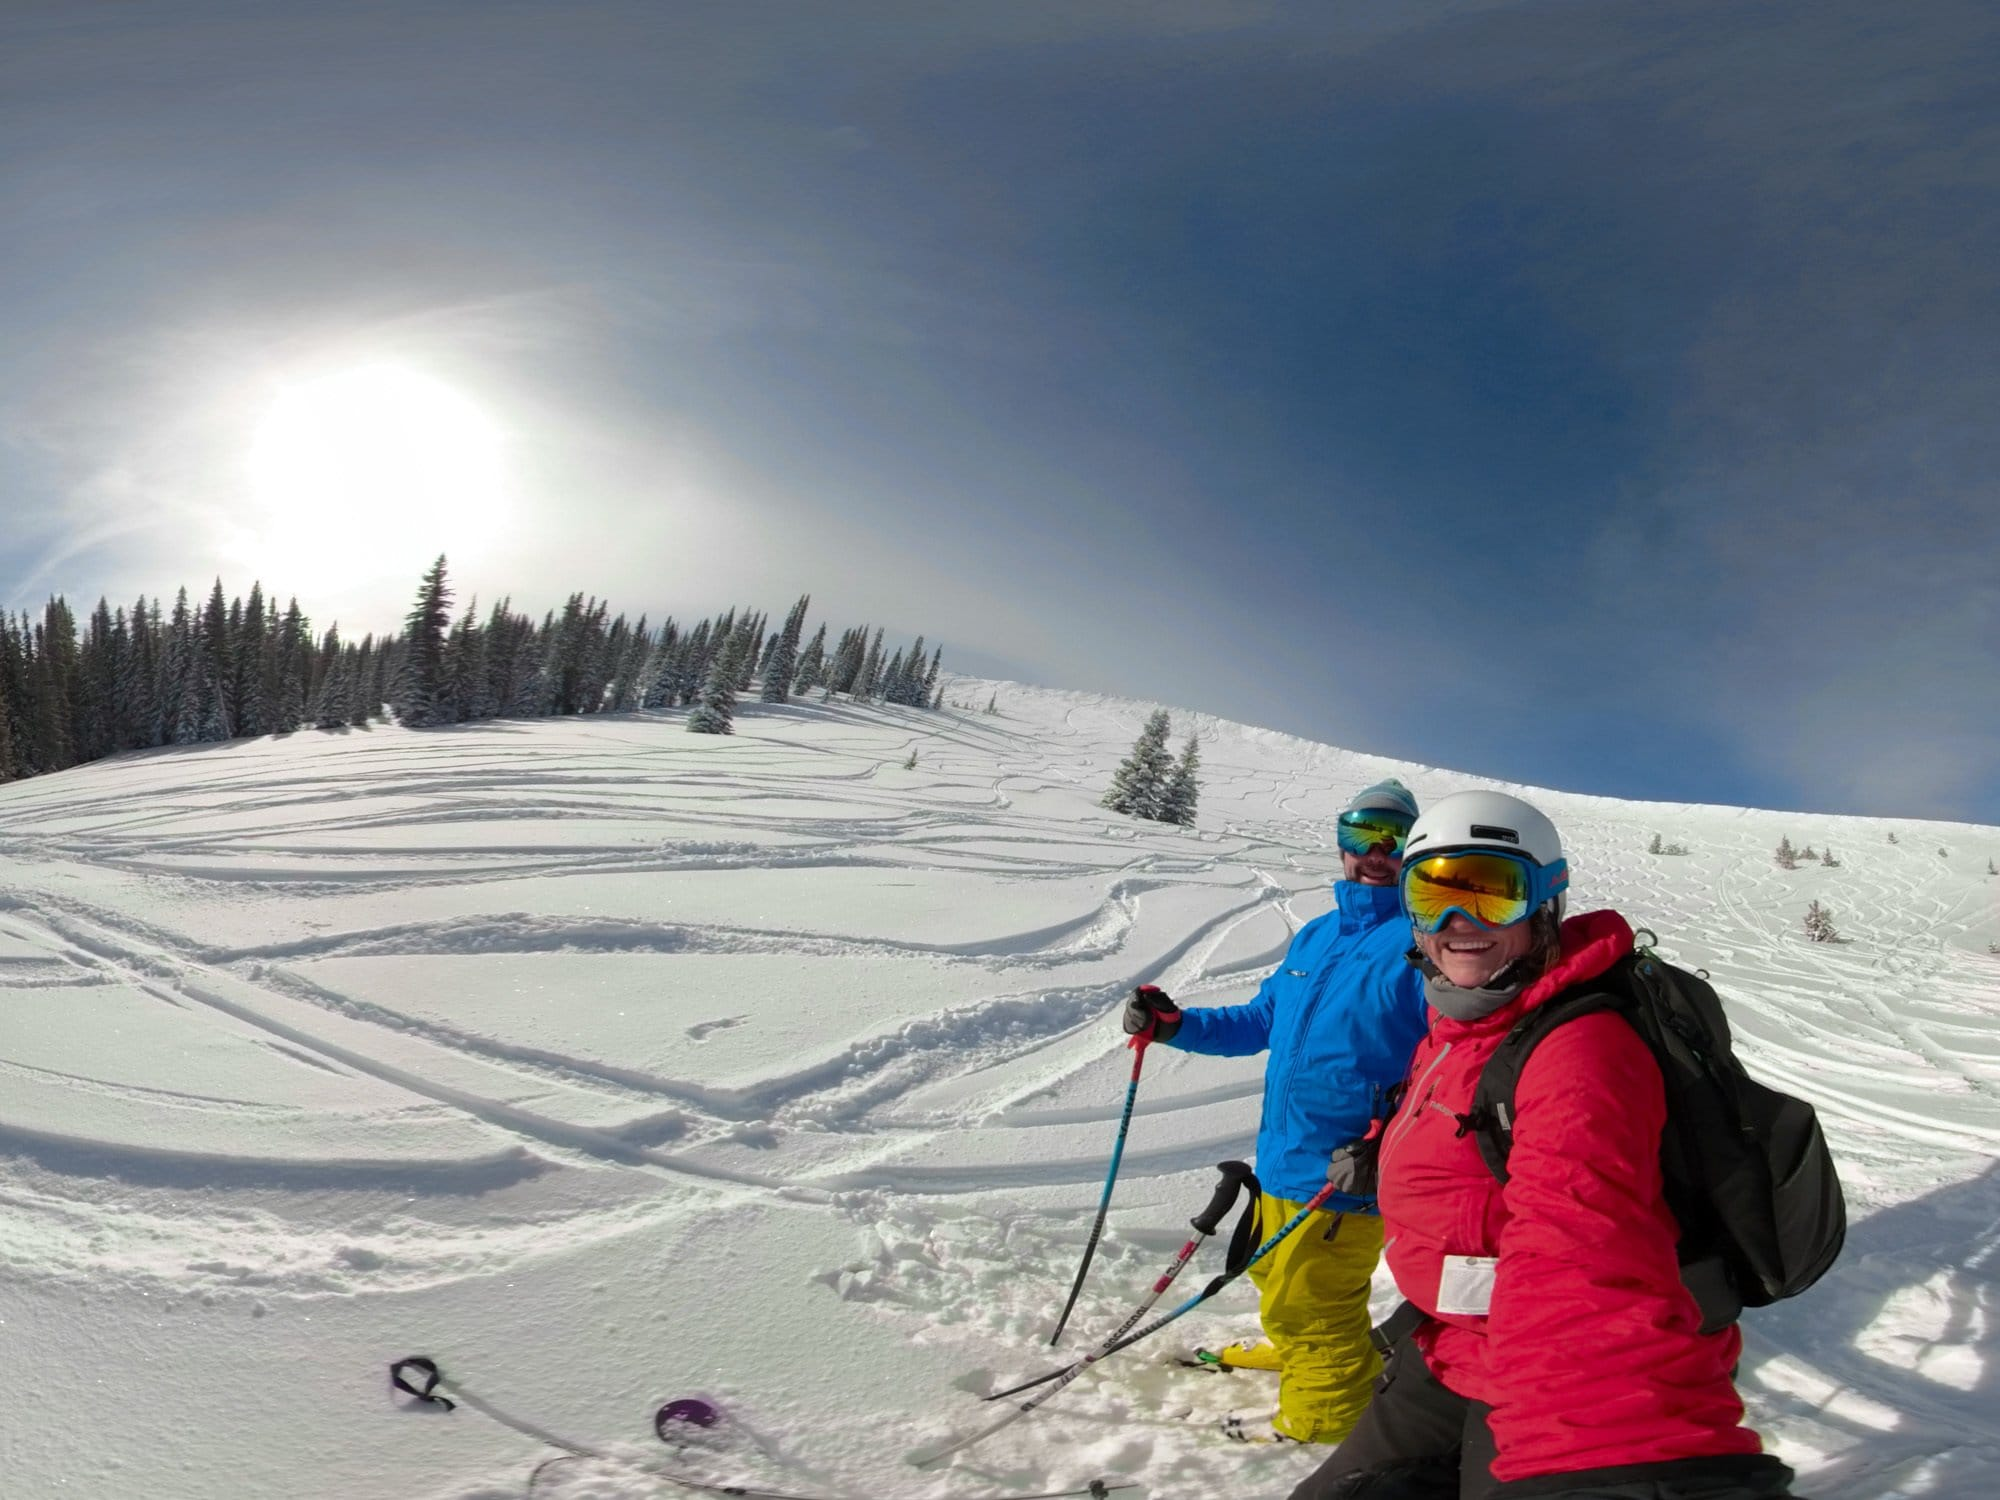 With over 300 inches a year and 2,800 feet of vertical terrain, Tamarack - Idaho's newest ski resort - should be on your radar. With cheap lift tickets, a mom & pop vibe, endless powder, and gorgeous views, here are 5 reasons you should ski Tamarack on your Idaho vacation.